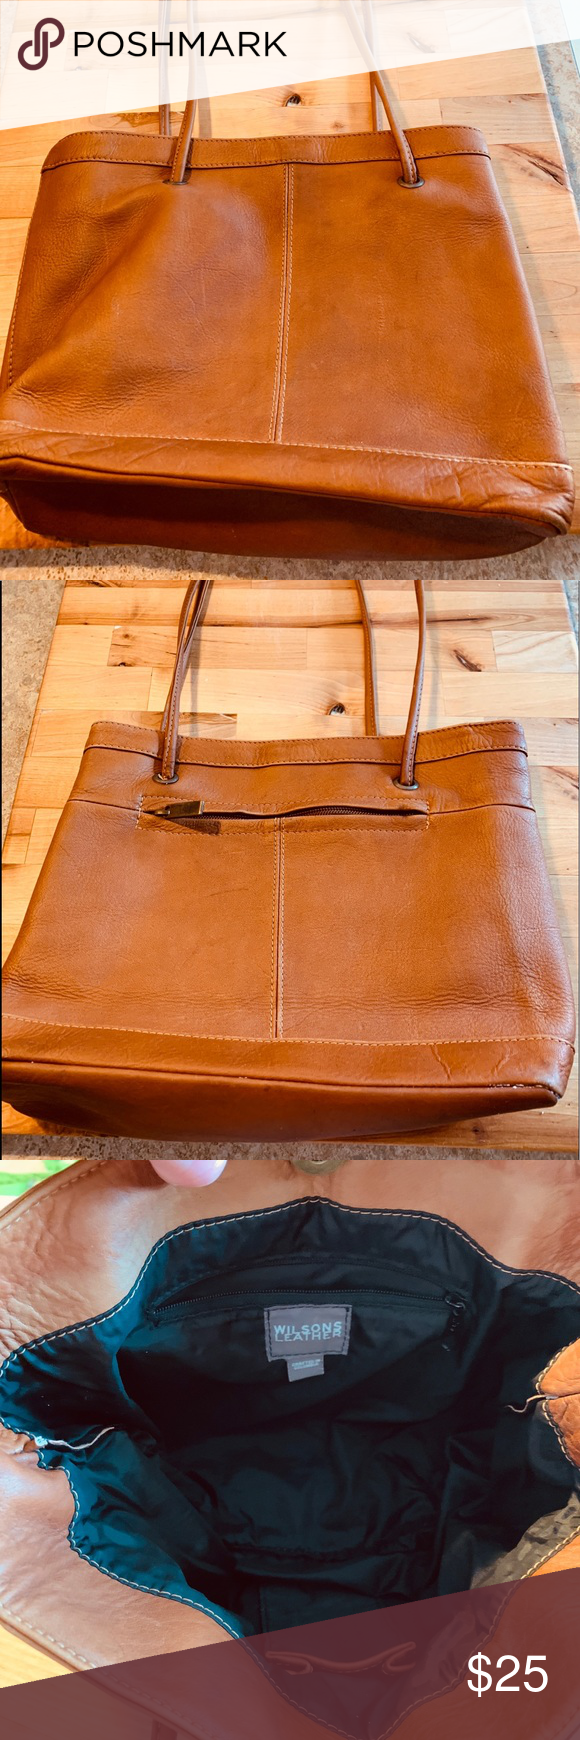 Wilson leather shoulder bag in 2020 Wilsons leather